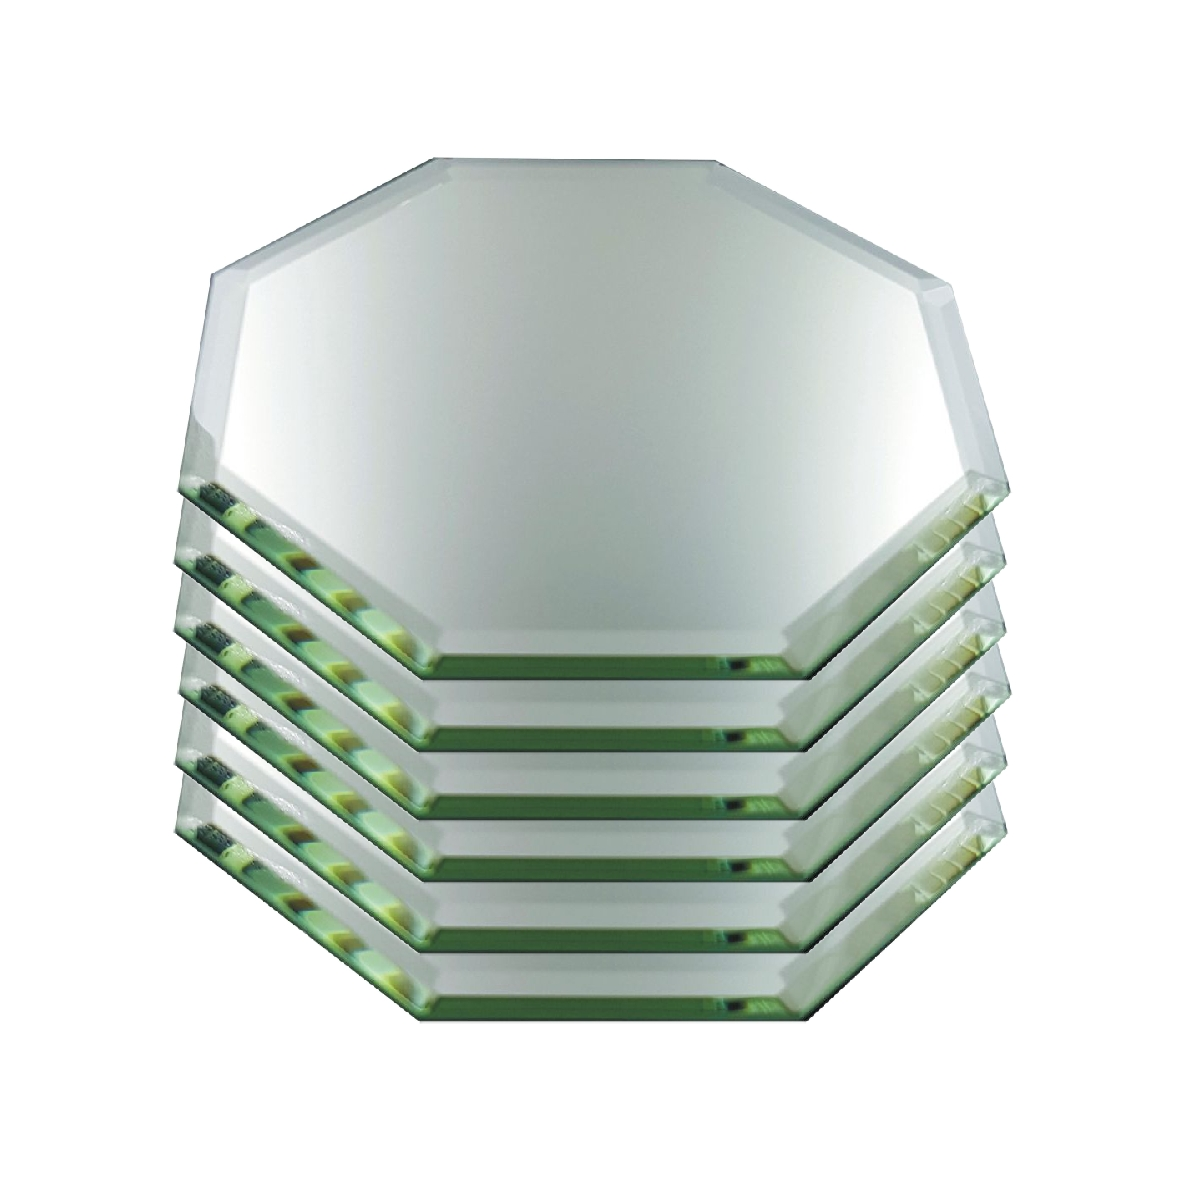 Octagon Mirrors Collectibles Or Decorative Purpose 3mm Bevel